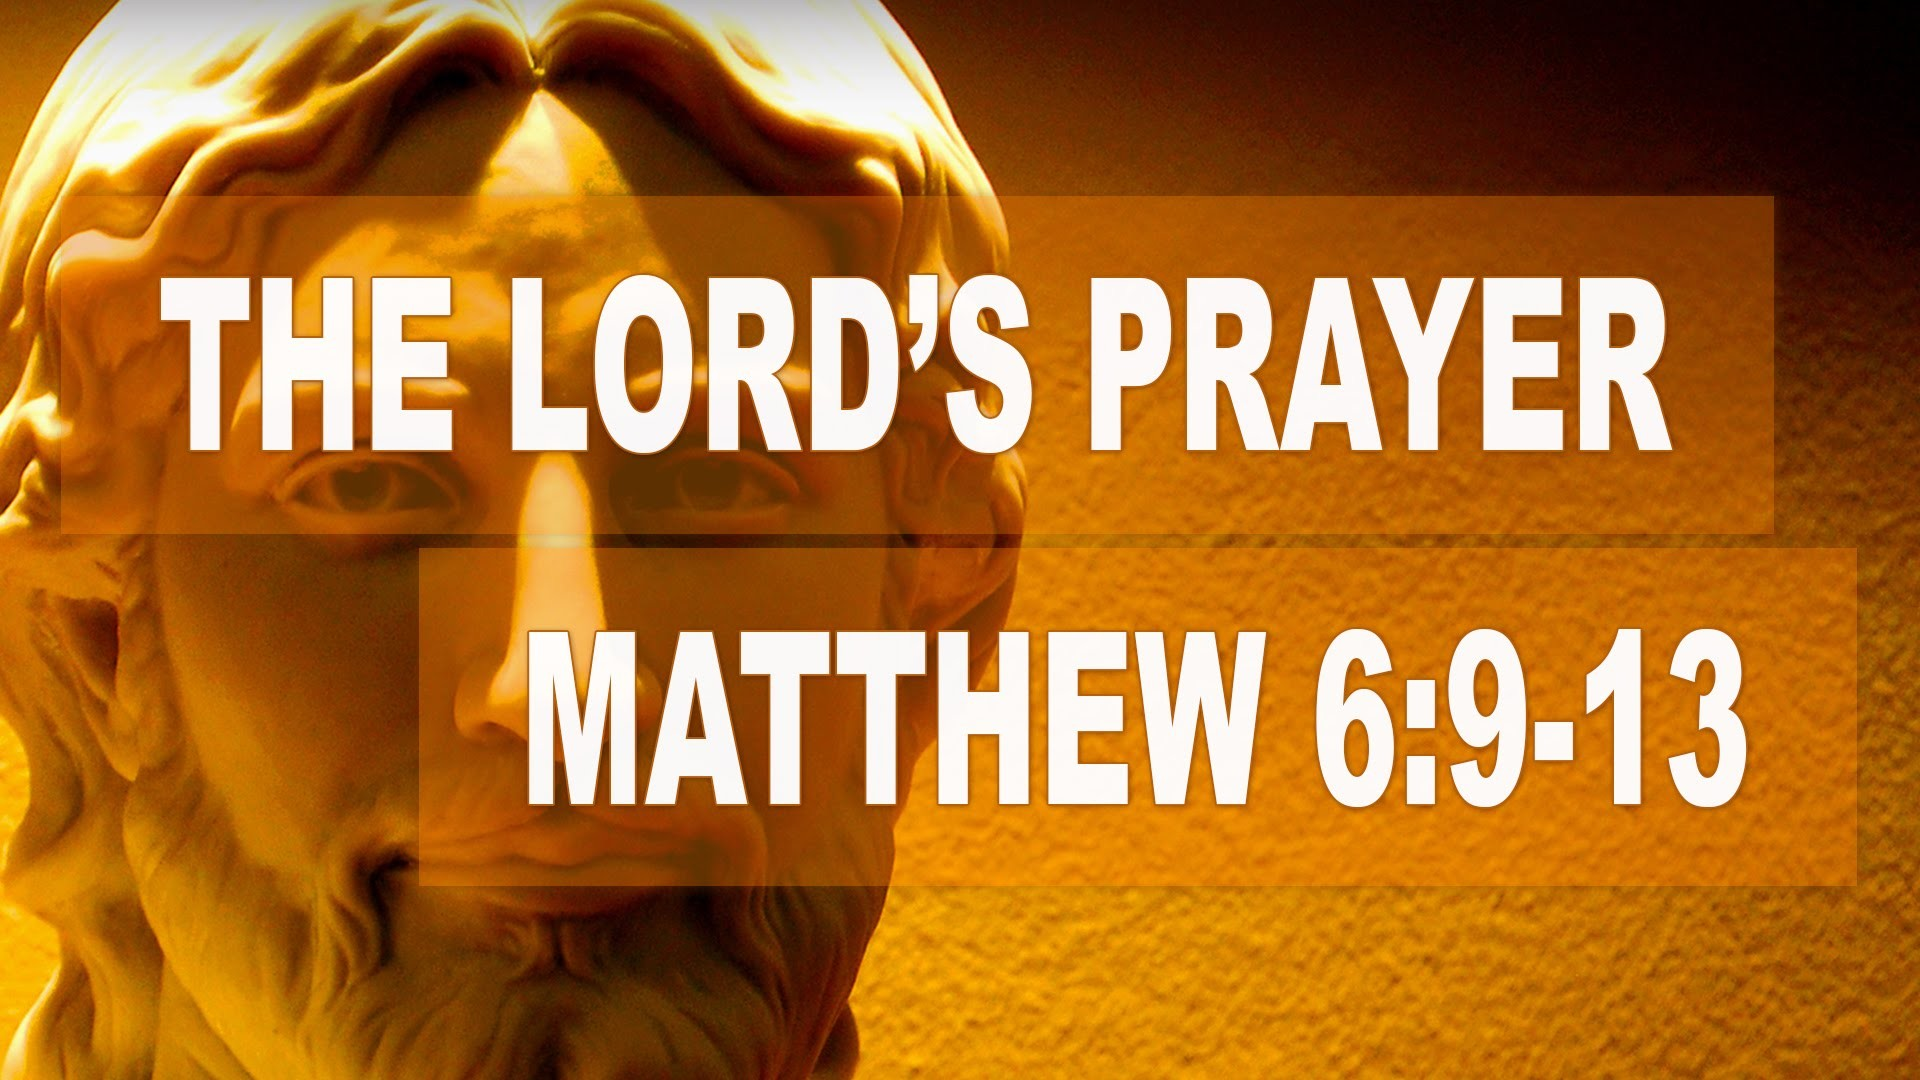 Res: 1920x1080, The Lord's Prayer - Our Father (Matthew 6:9-13)